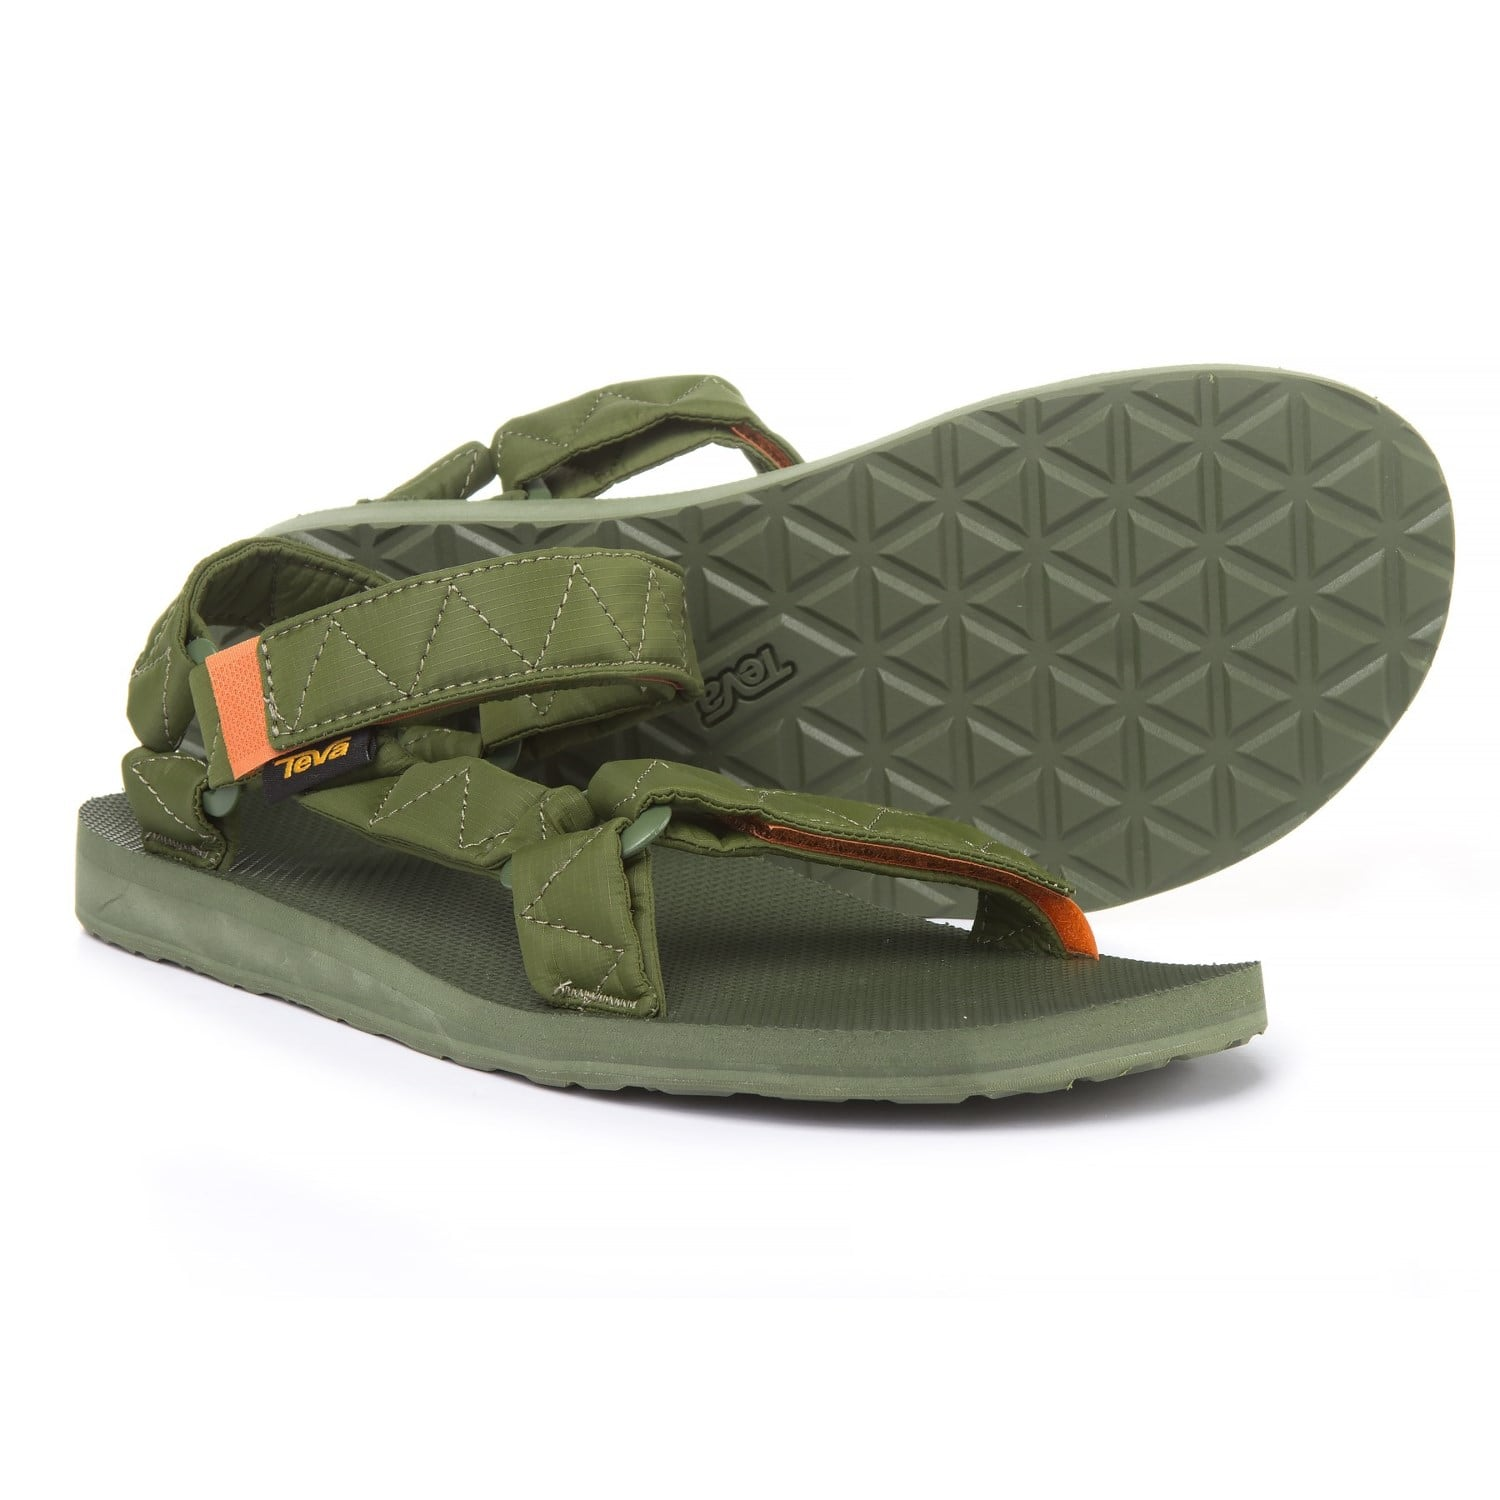 Sierra Trading Post: Up to 65% off Shoes/Sandals from Merrell, Teva, Chaco & More; Prices at $14.99+